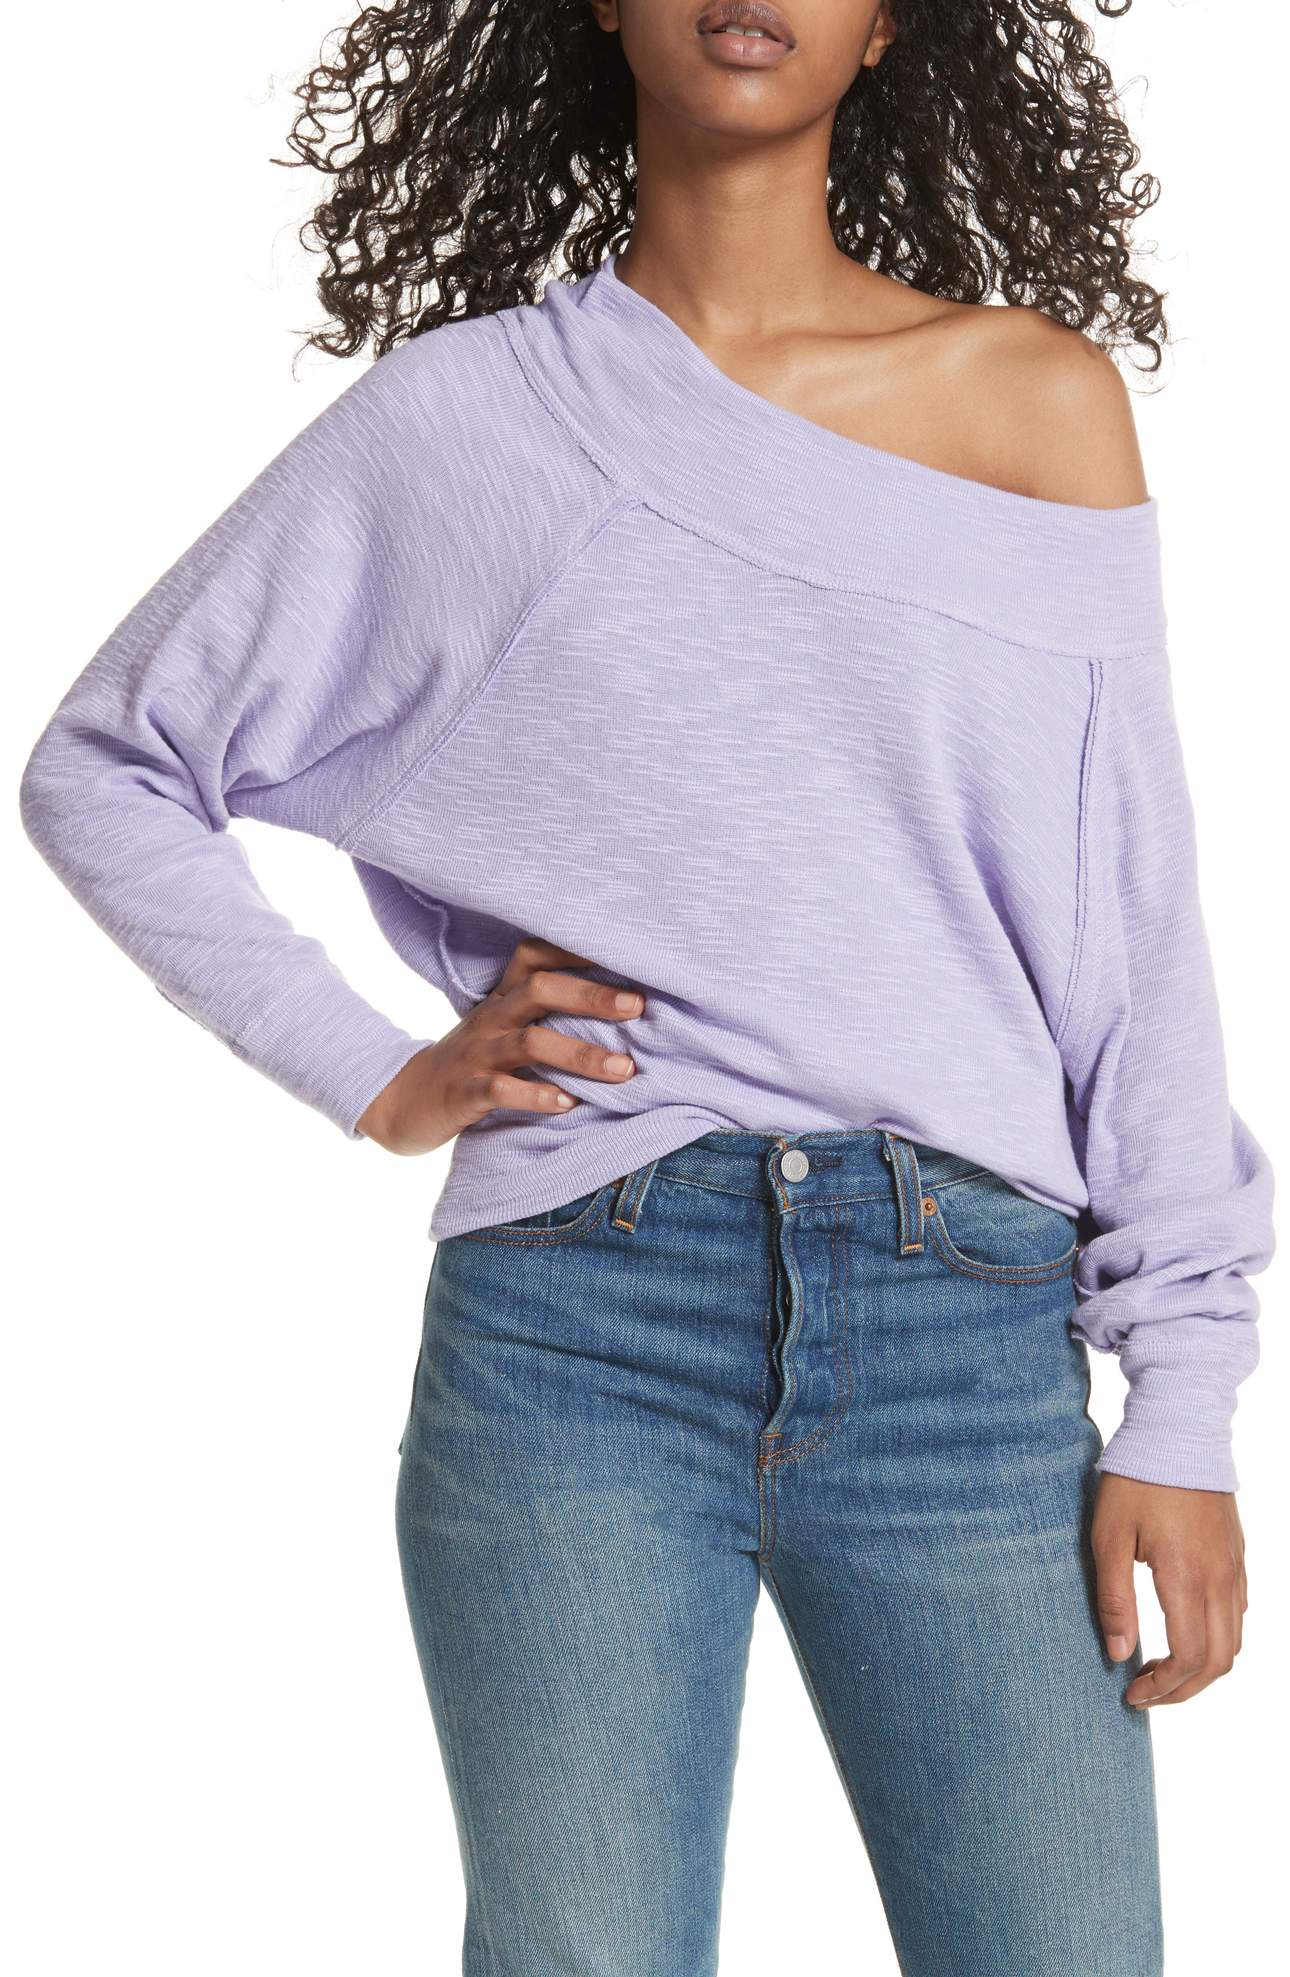 The Palisades Off the Shoulder was $68 and is now $45.56. Slouchy dolman sleeves and off-the-shoulder styling make this comfy triblend top a pitch-perfect homage to '80s style.<p><br></p><p>(Image: Nordstrom)</p>